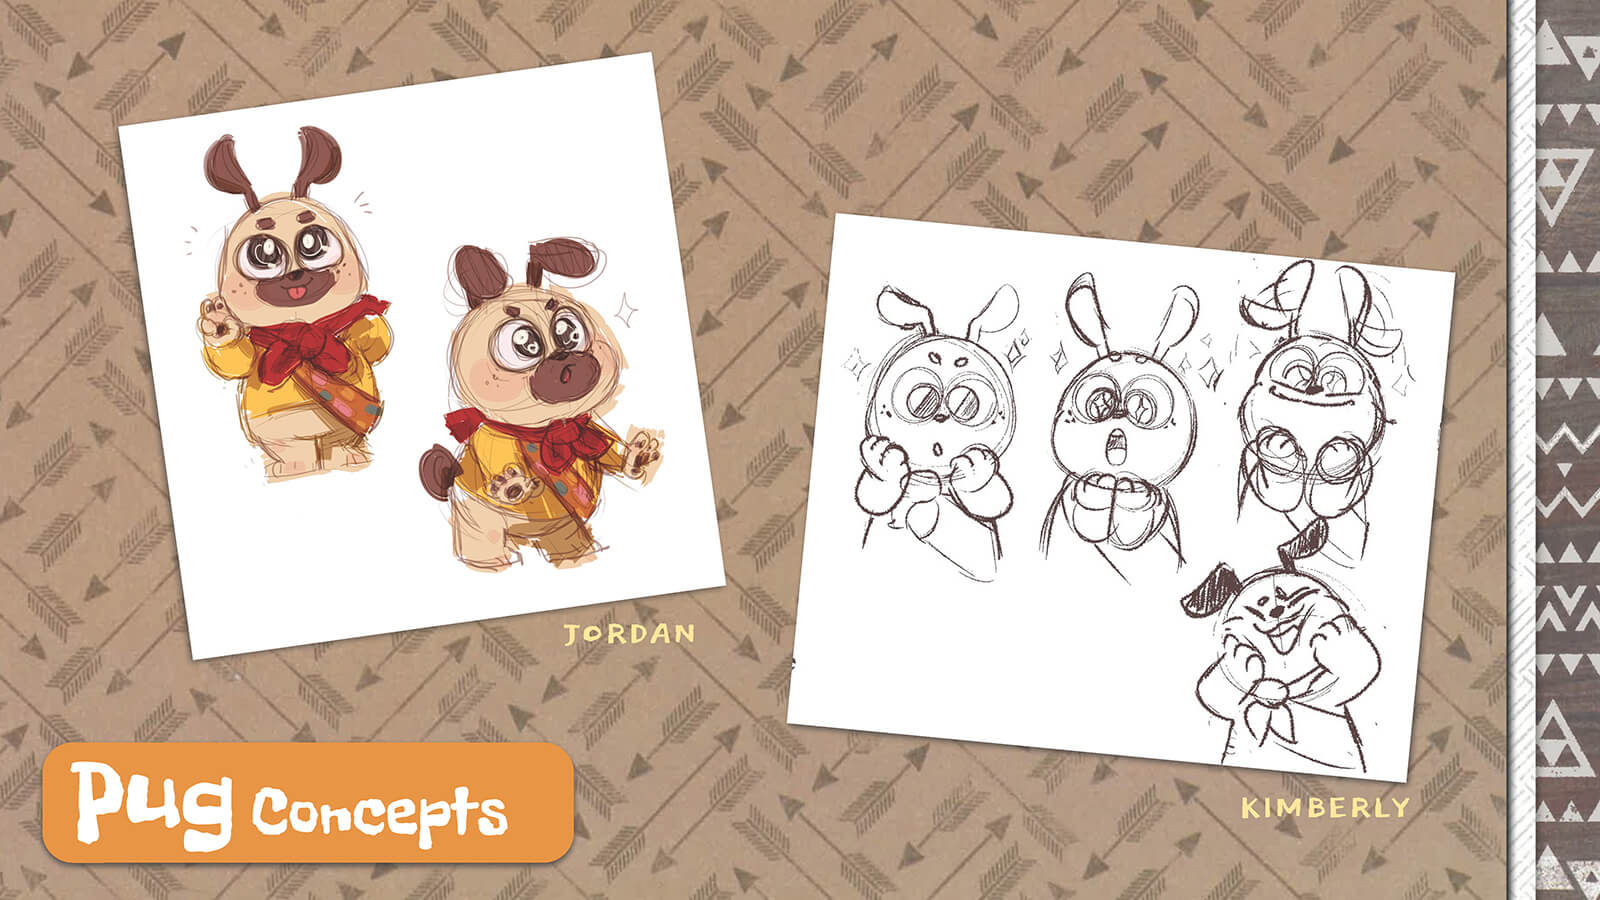 Concept art and sketches of the character Pug.